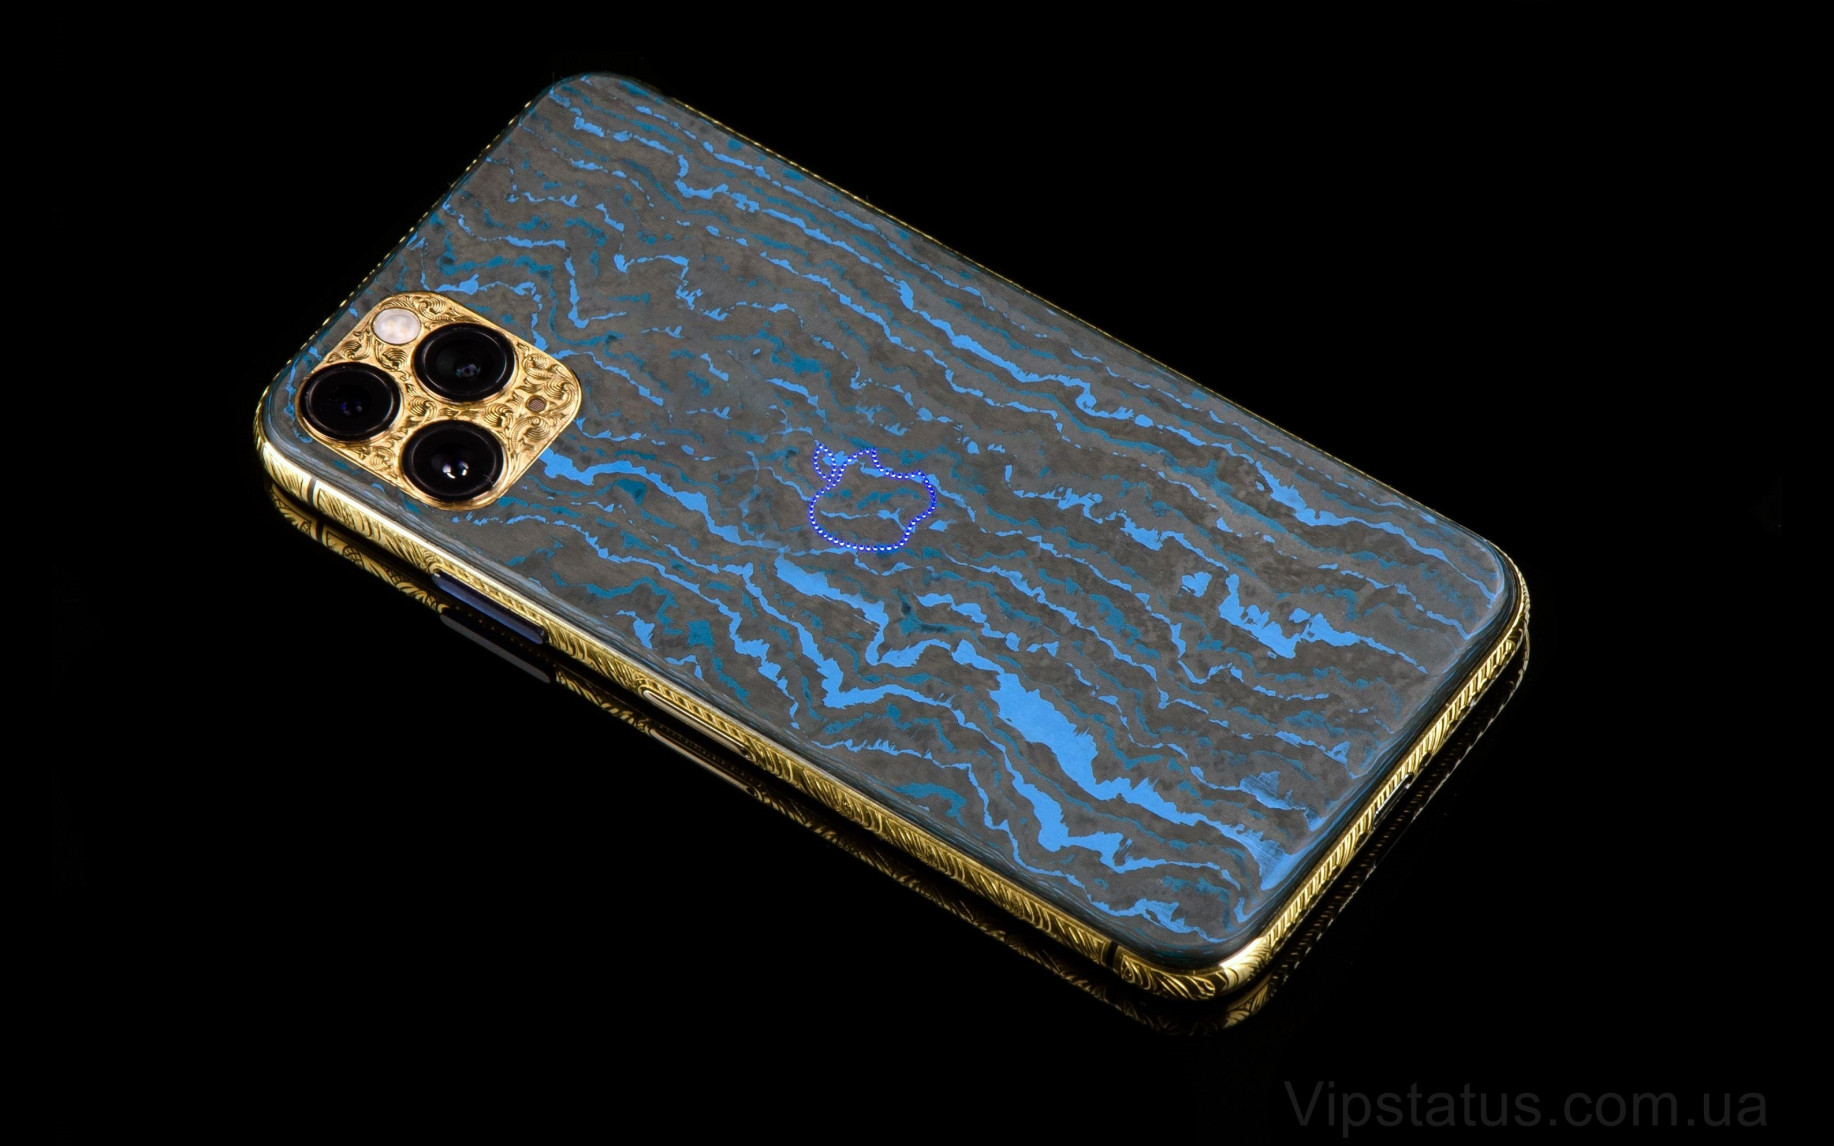 Elite Blue Dream IPHONE XS 512 GB Blue Dream IPHONE XS 512 GB image 3